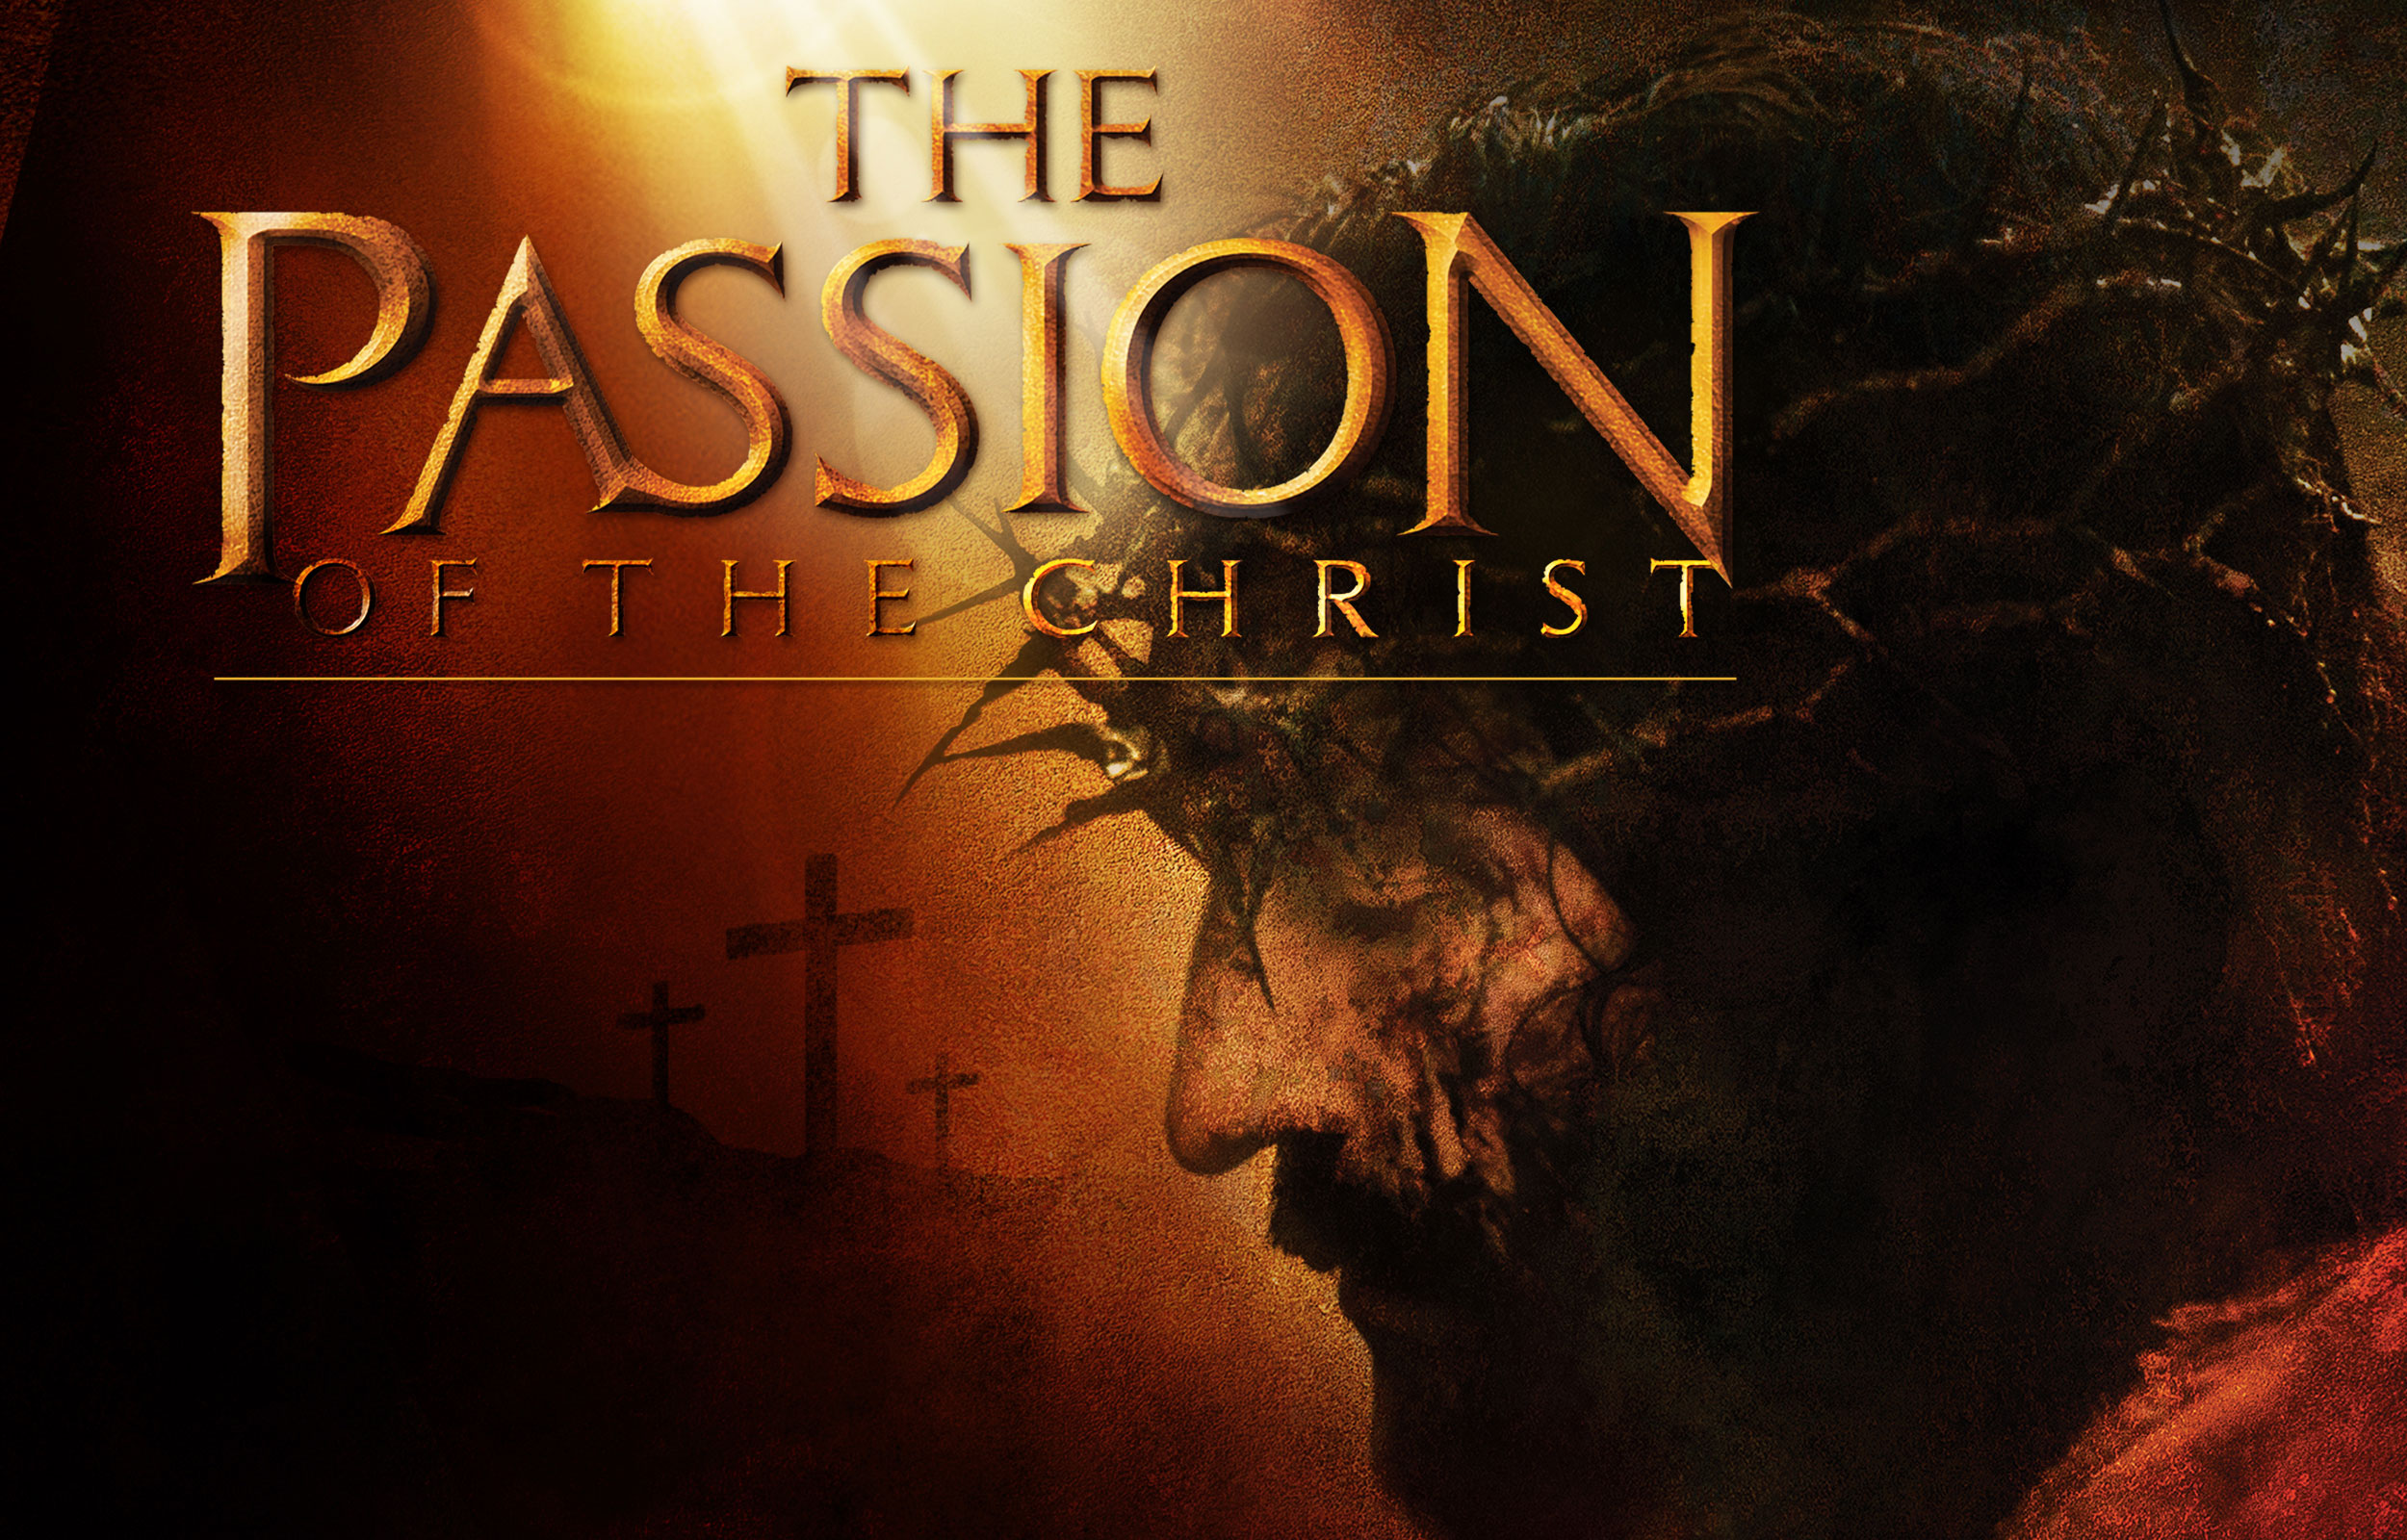 The Passion 2017 An Evening With Jesus Featuring The Passion Of The Christ